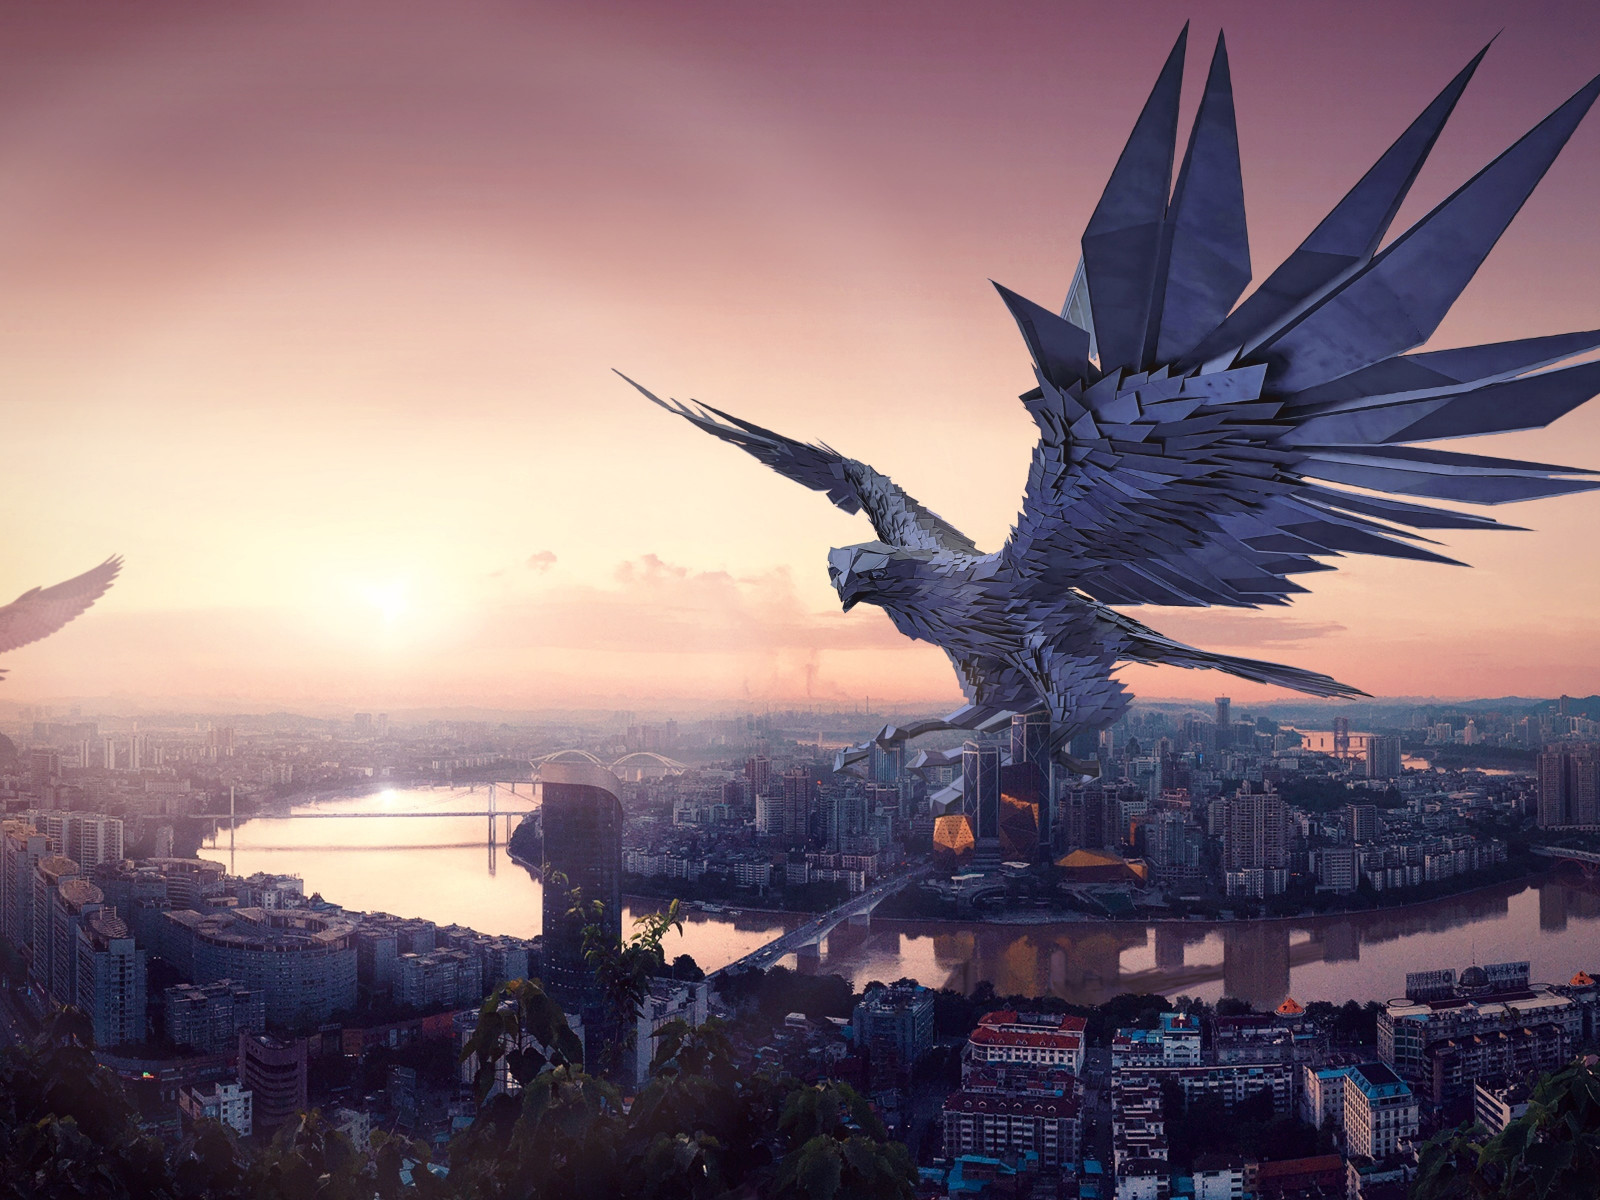 The falcon, protector of the city wallpaper 1600x1200